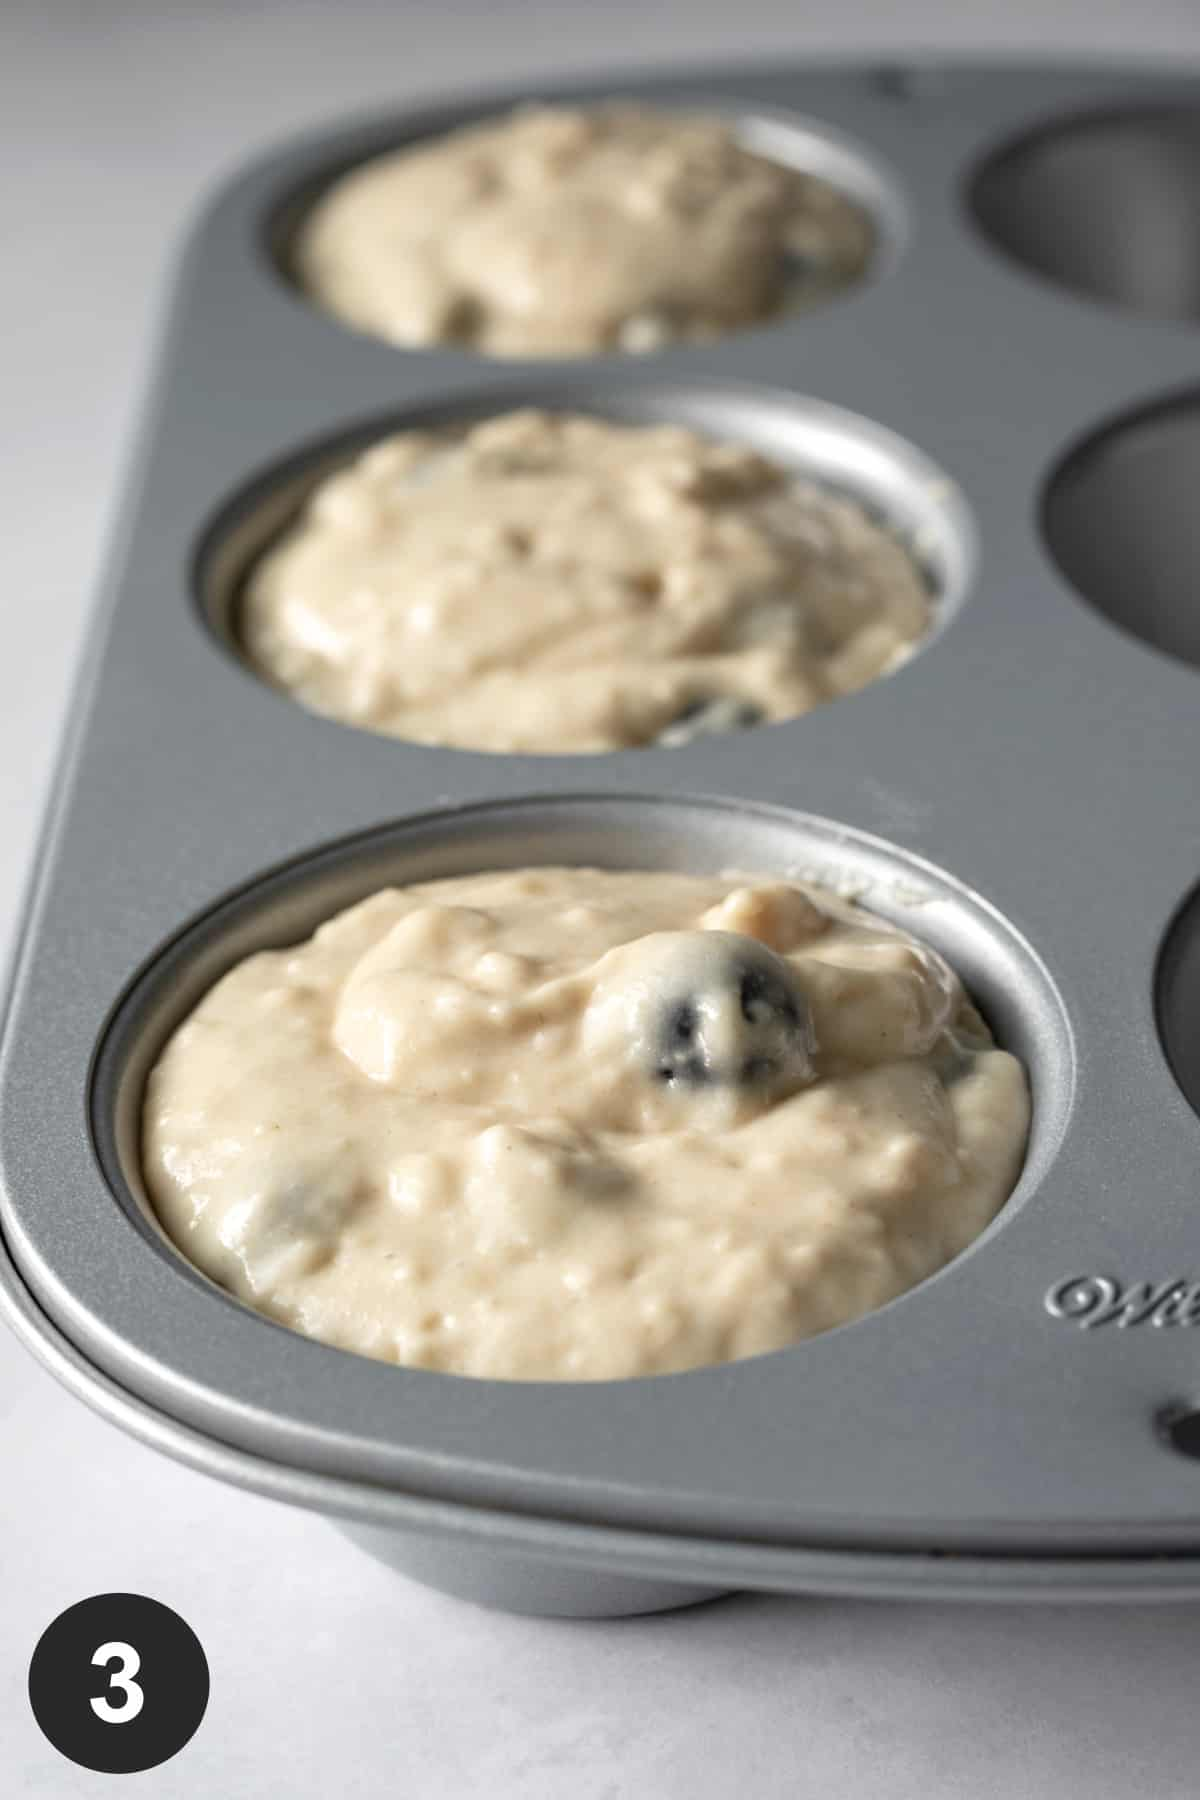 close up photo showing thick batter filling muffin cups almost to the top.